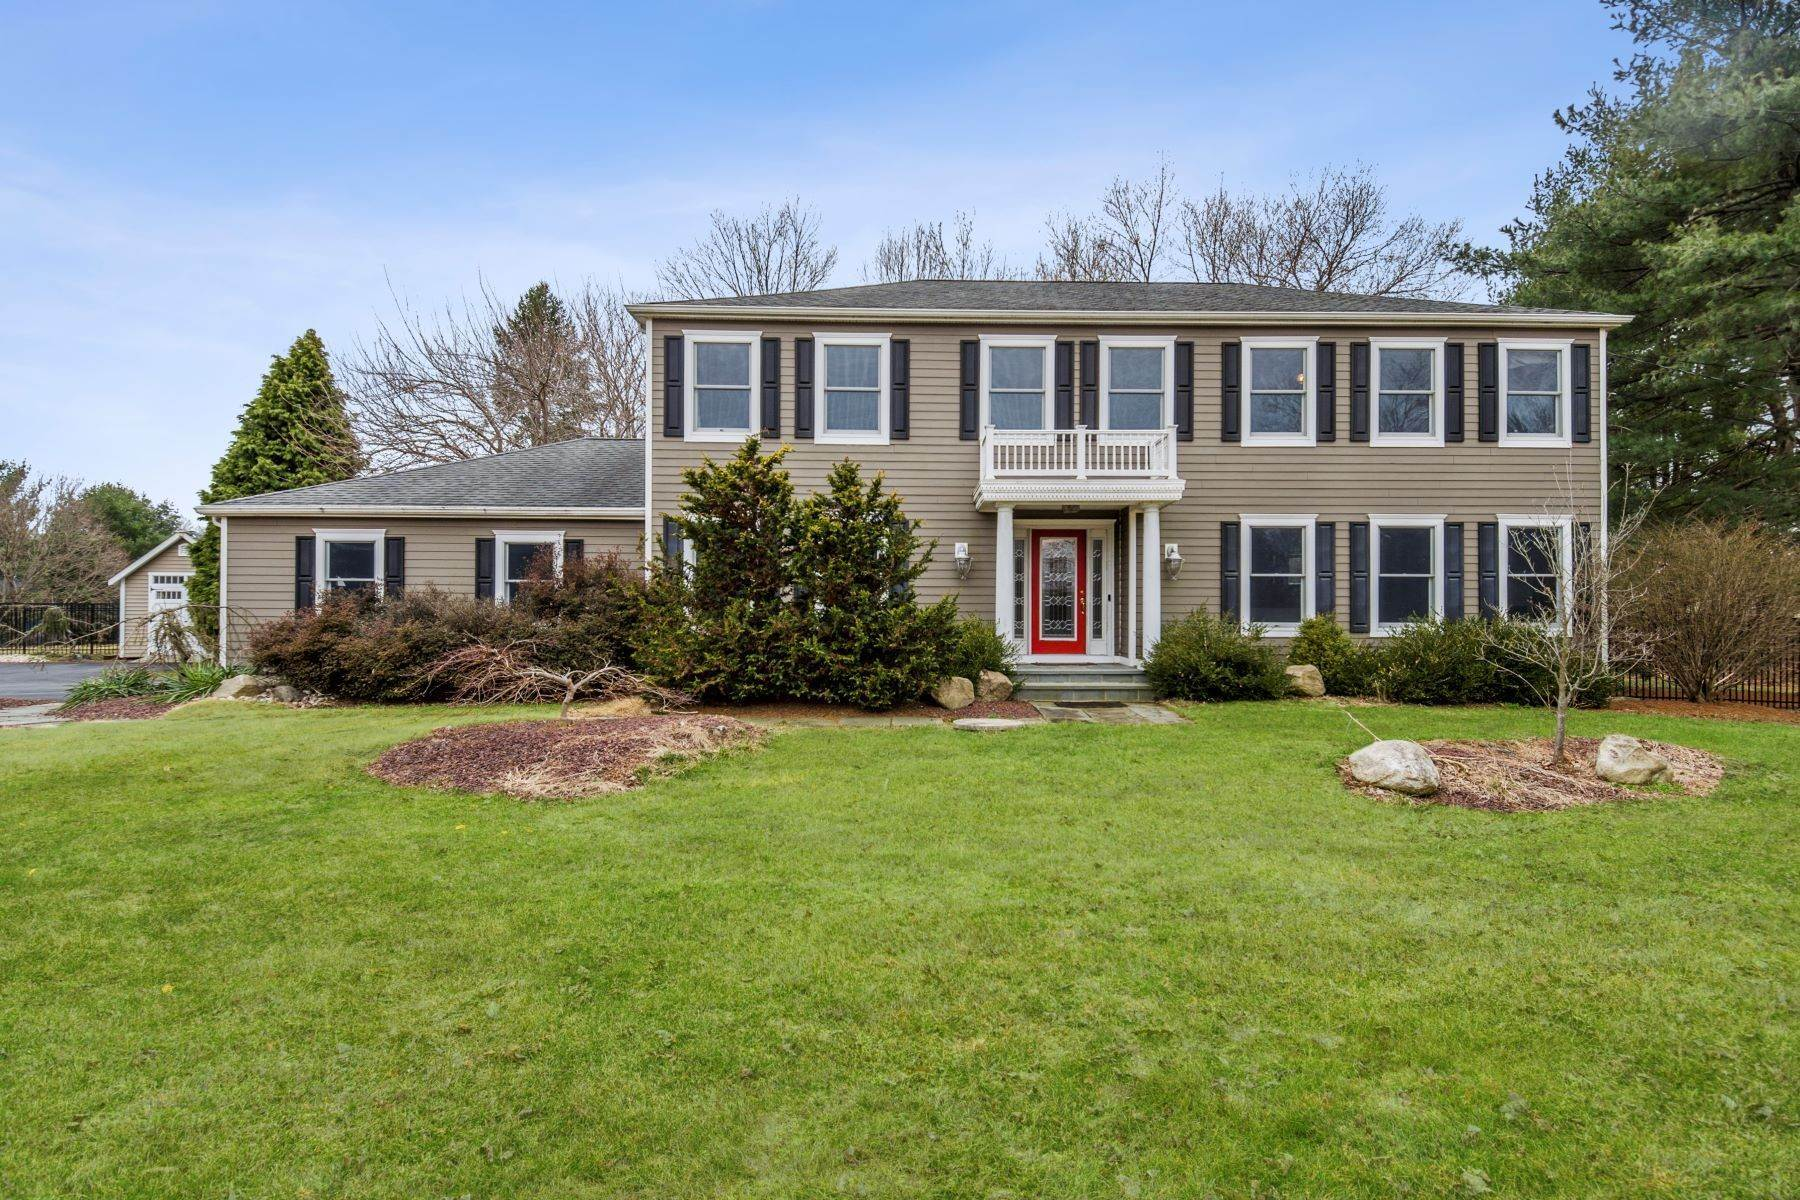 Single Family Homes for Sale at The Whole Package on a Pretty Shadow Oaks Lot 6 Scottsdale Court Cranbury, New Jersey 08512 United States